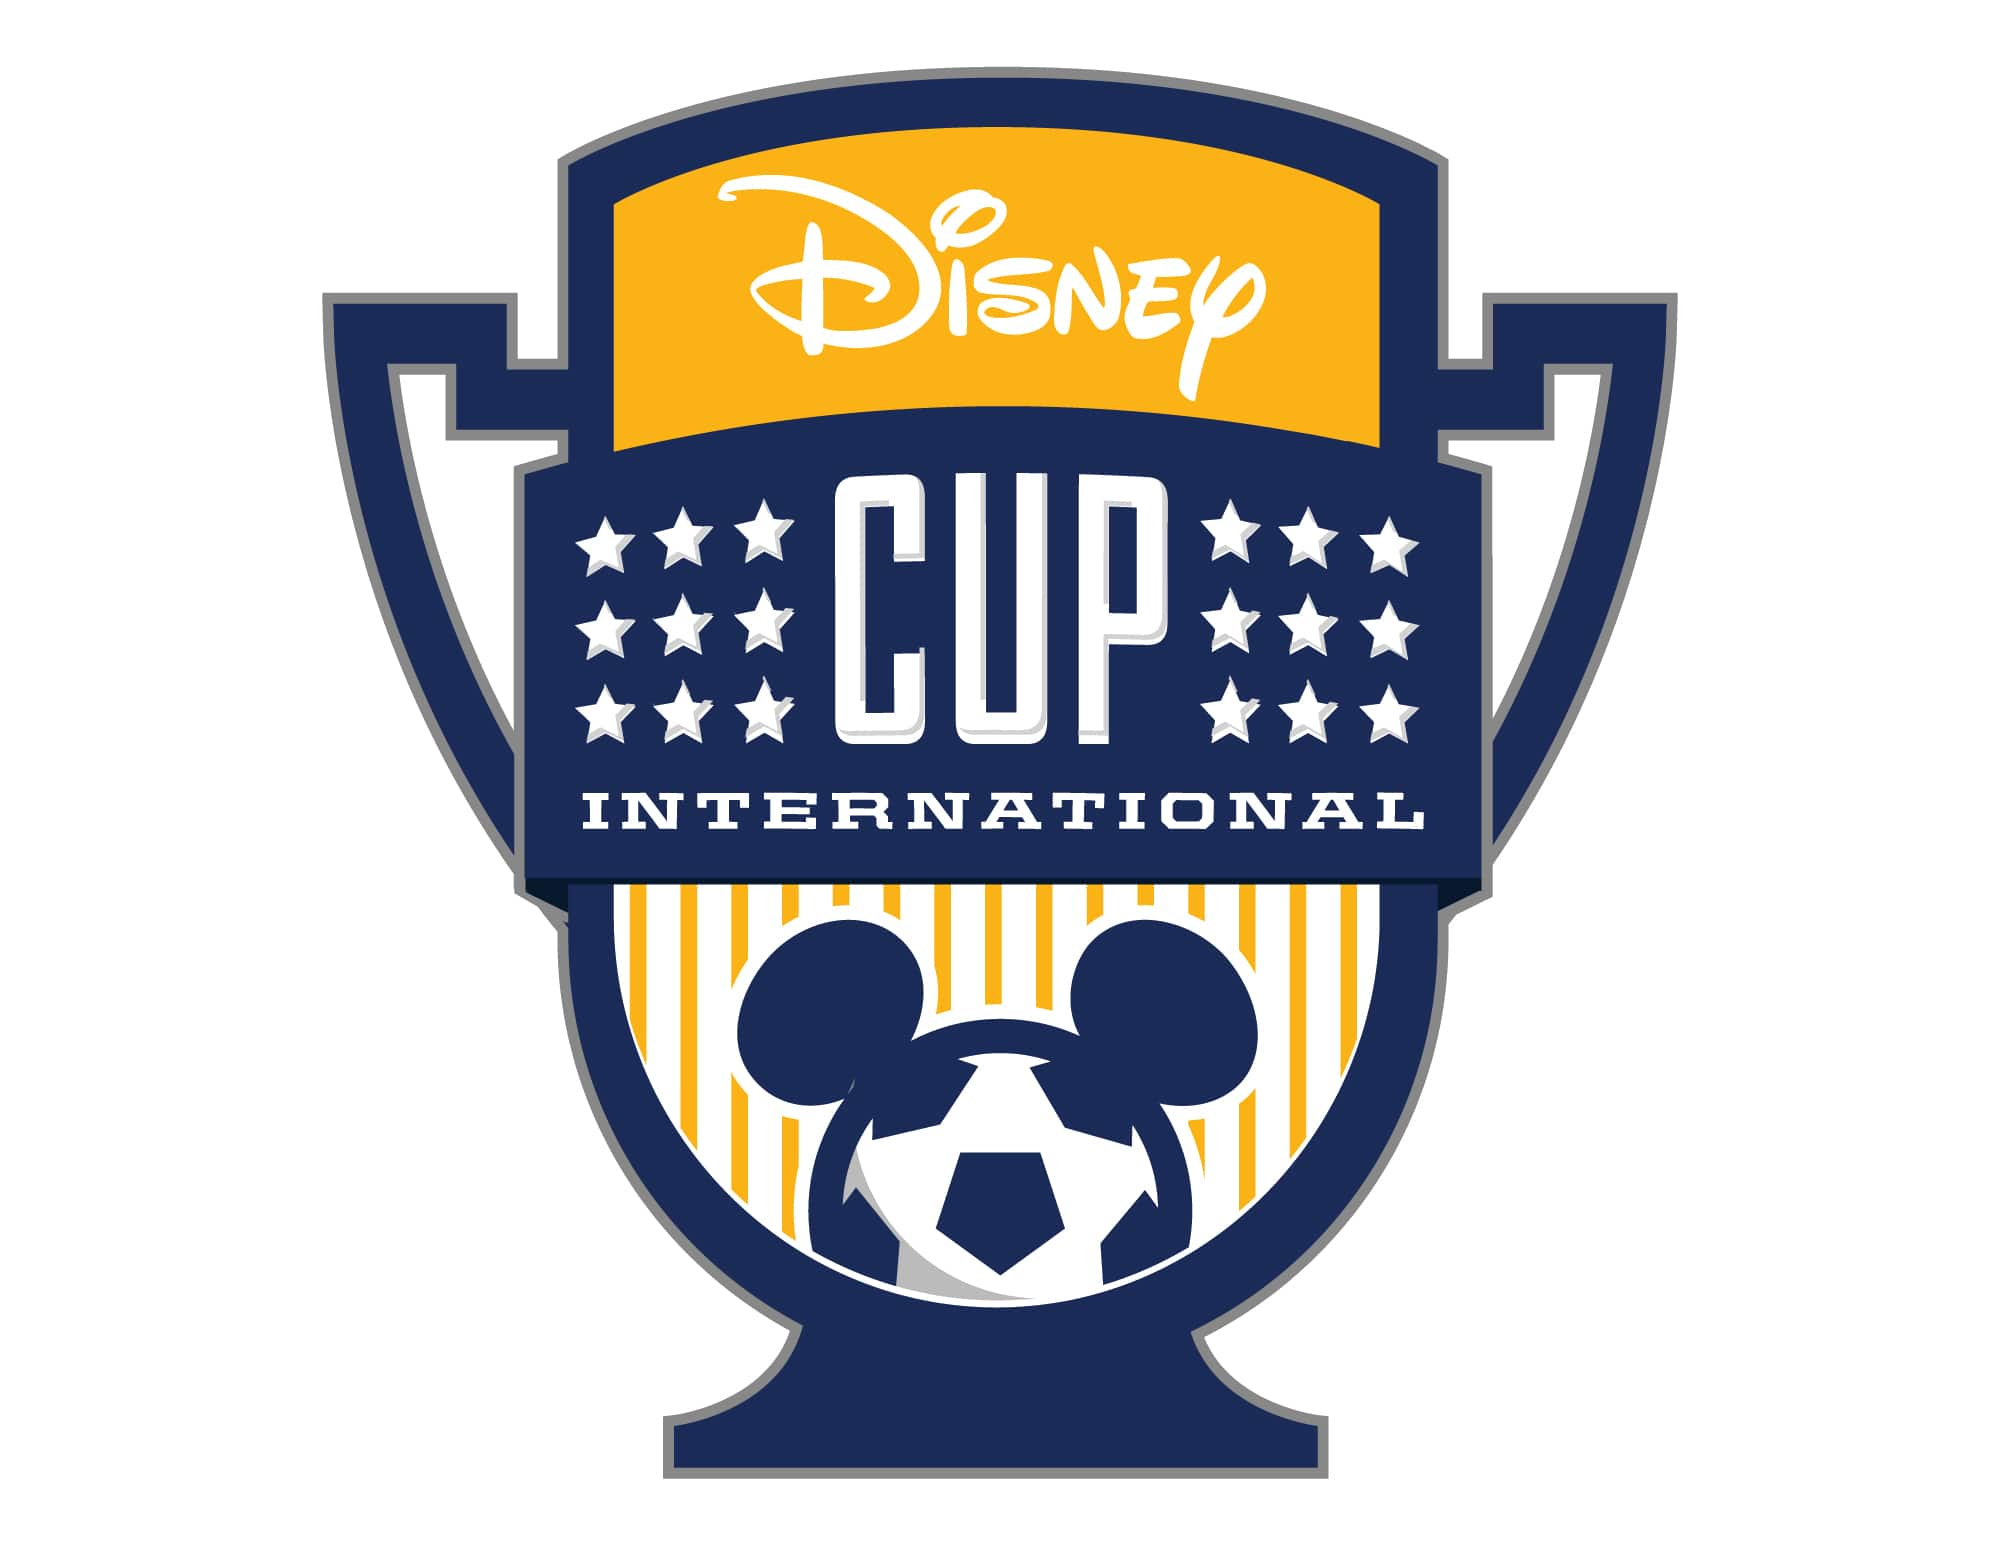 An icon of a cup with a soccer ball with mouse ears with the words Disney Cup International